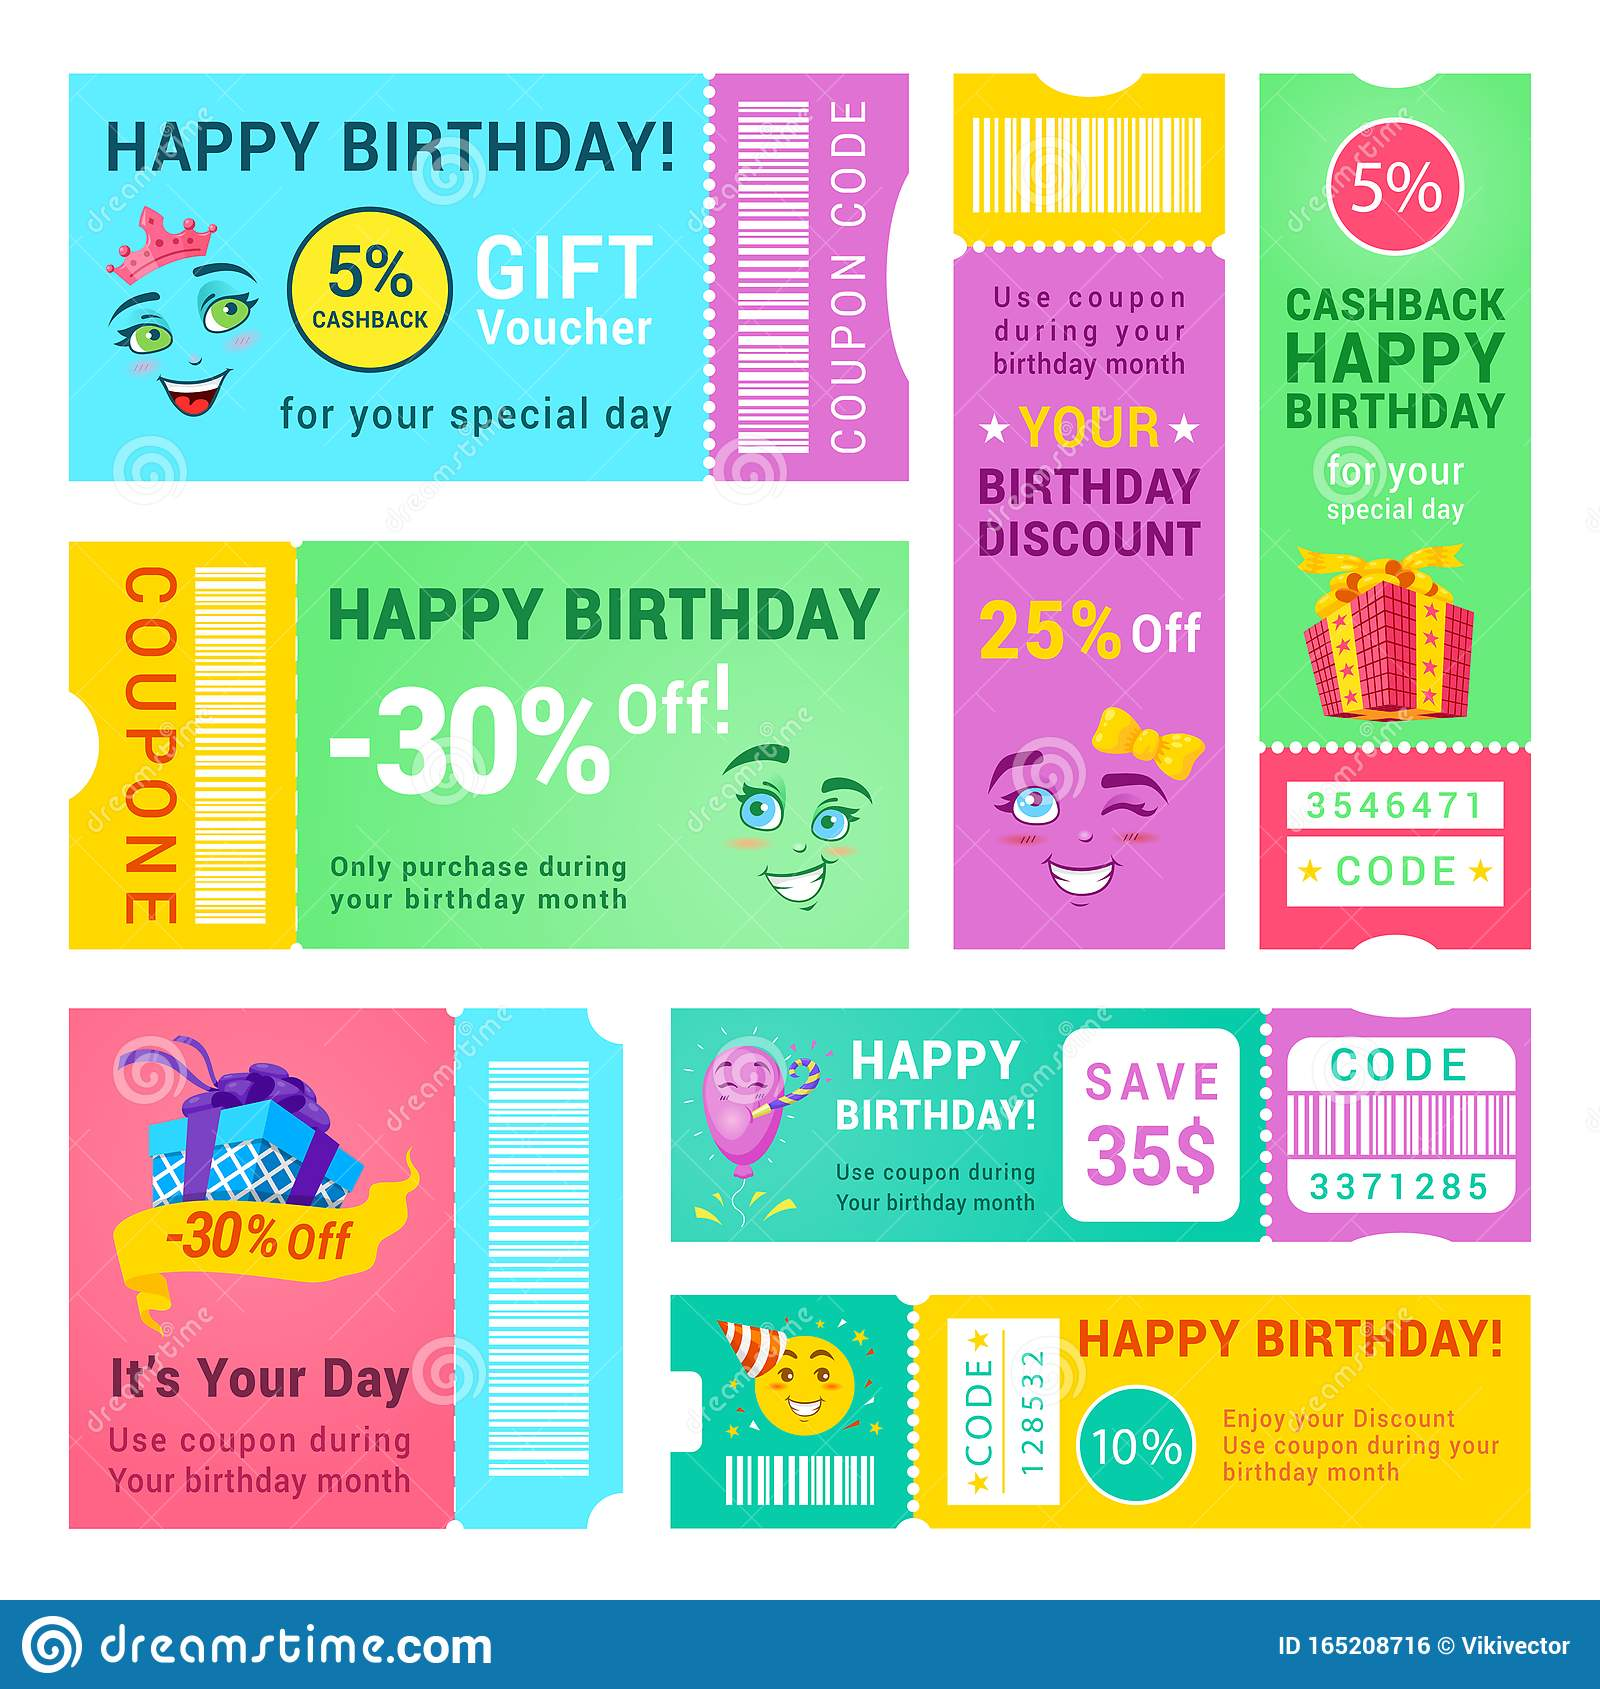 Happy Birthday Promo Vouchers Vector Design Templates Set Stock Vector Illustration Of Cartoon Collection 165208716